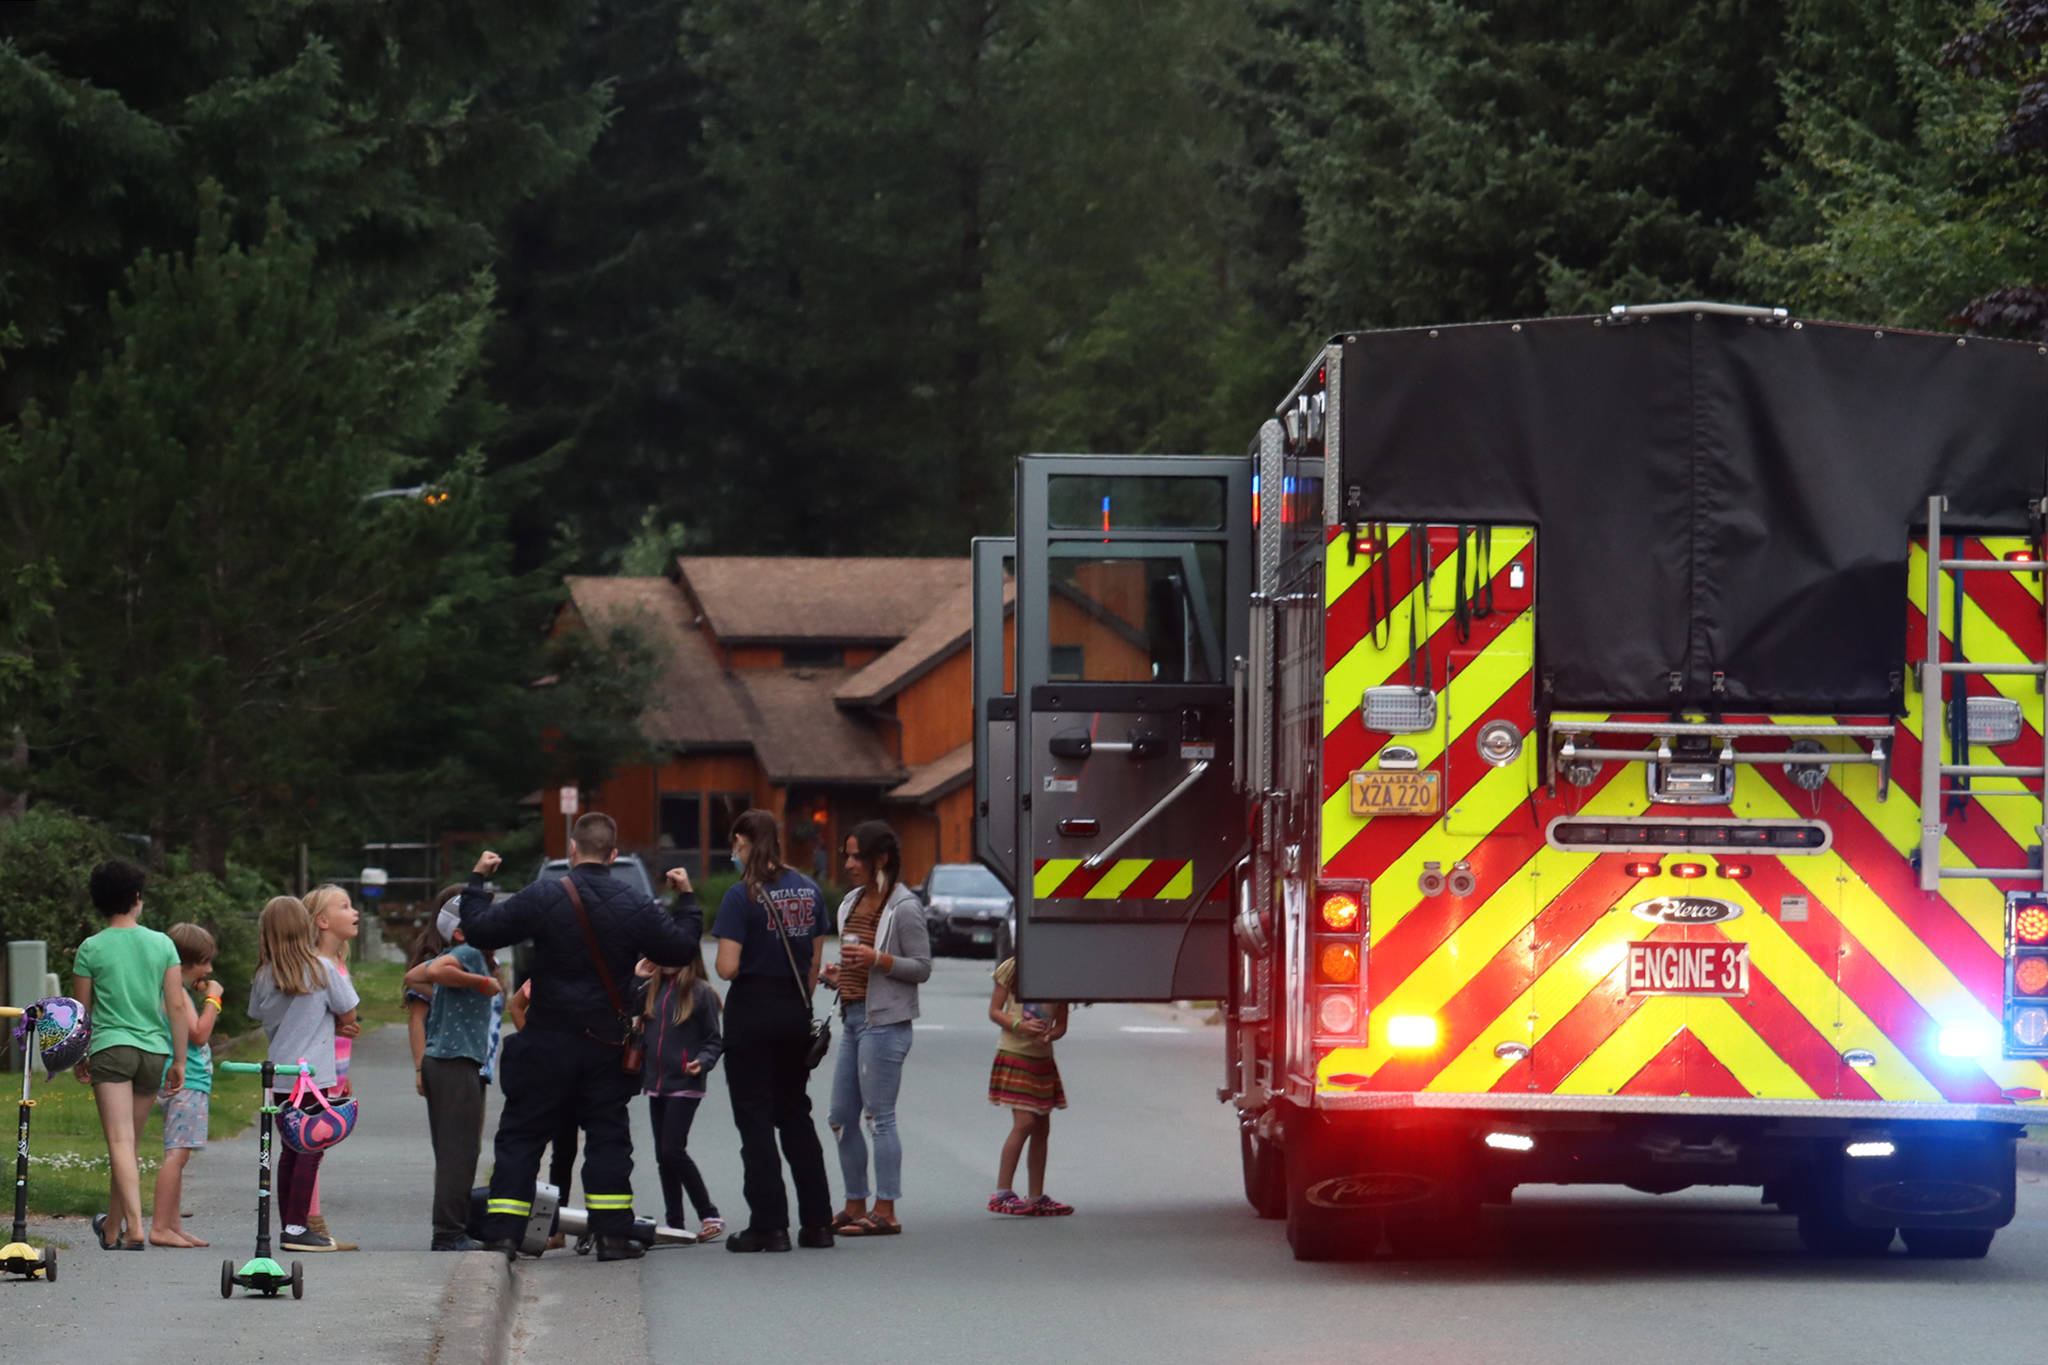 Children line up to check out a fire truck during National Night Out. Sirens, horns and squawking intercoms were part of the night's soundscape. (Ben Hohenstatt / Juneau Empire)